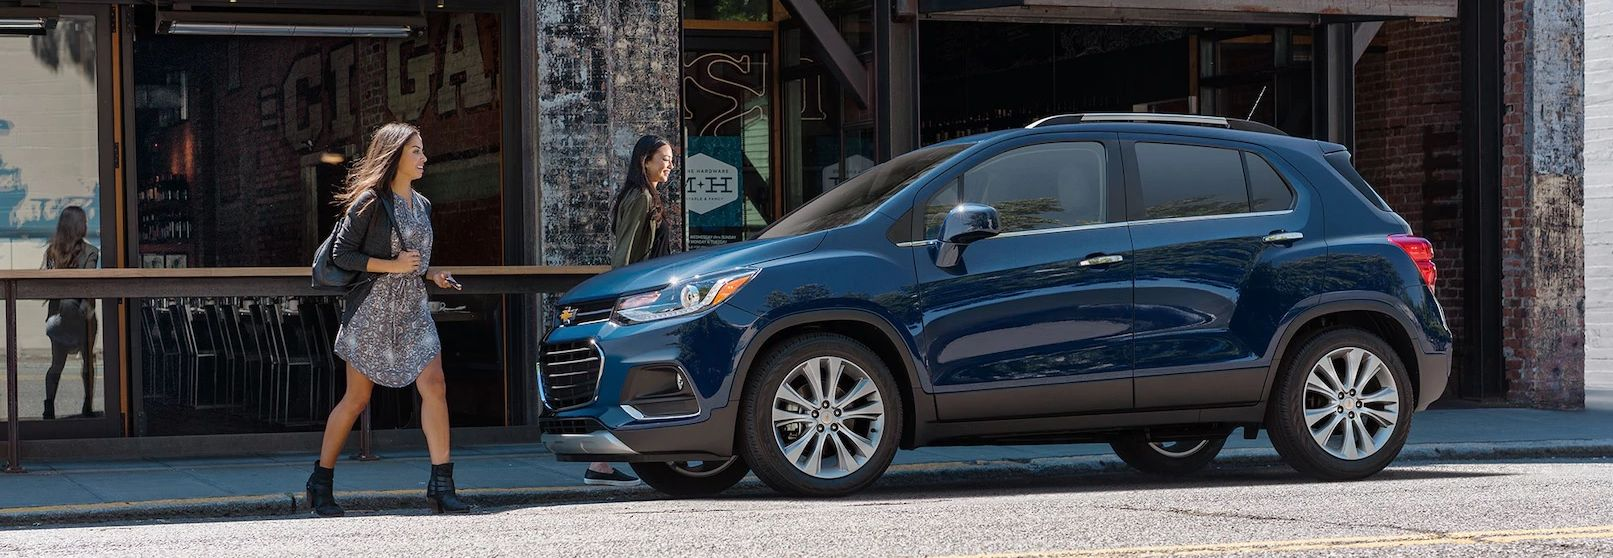 2018 Chevrolet Trax For Sale In Chicago Il Kingdom Chevy